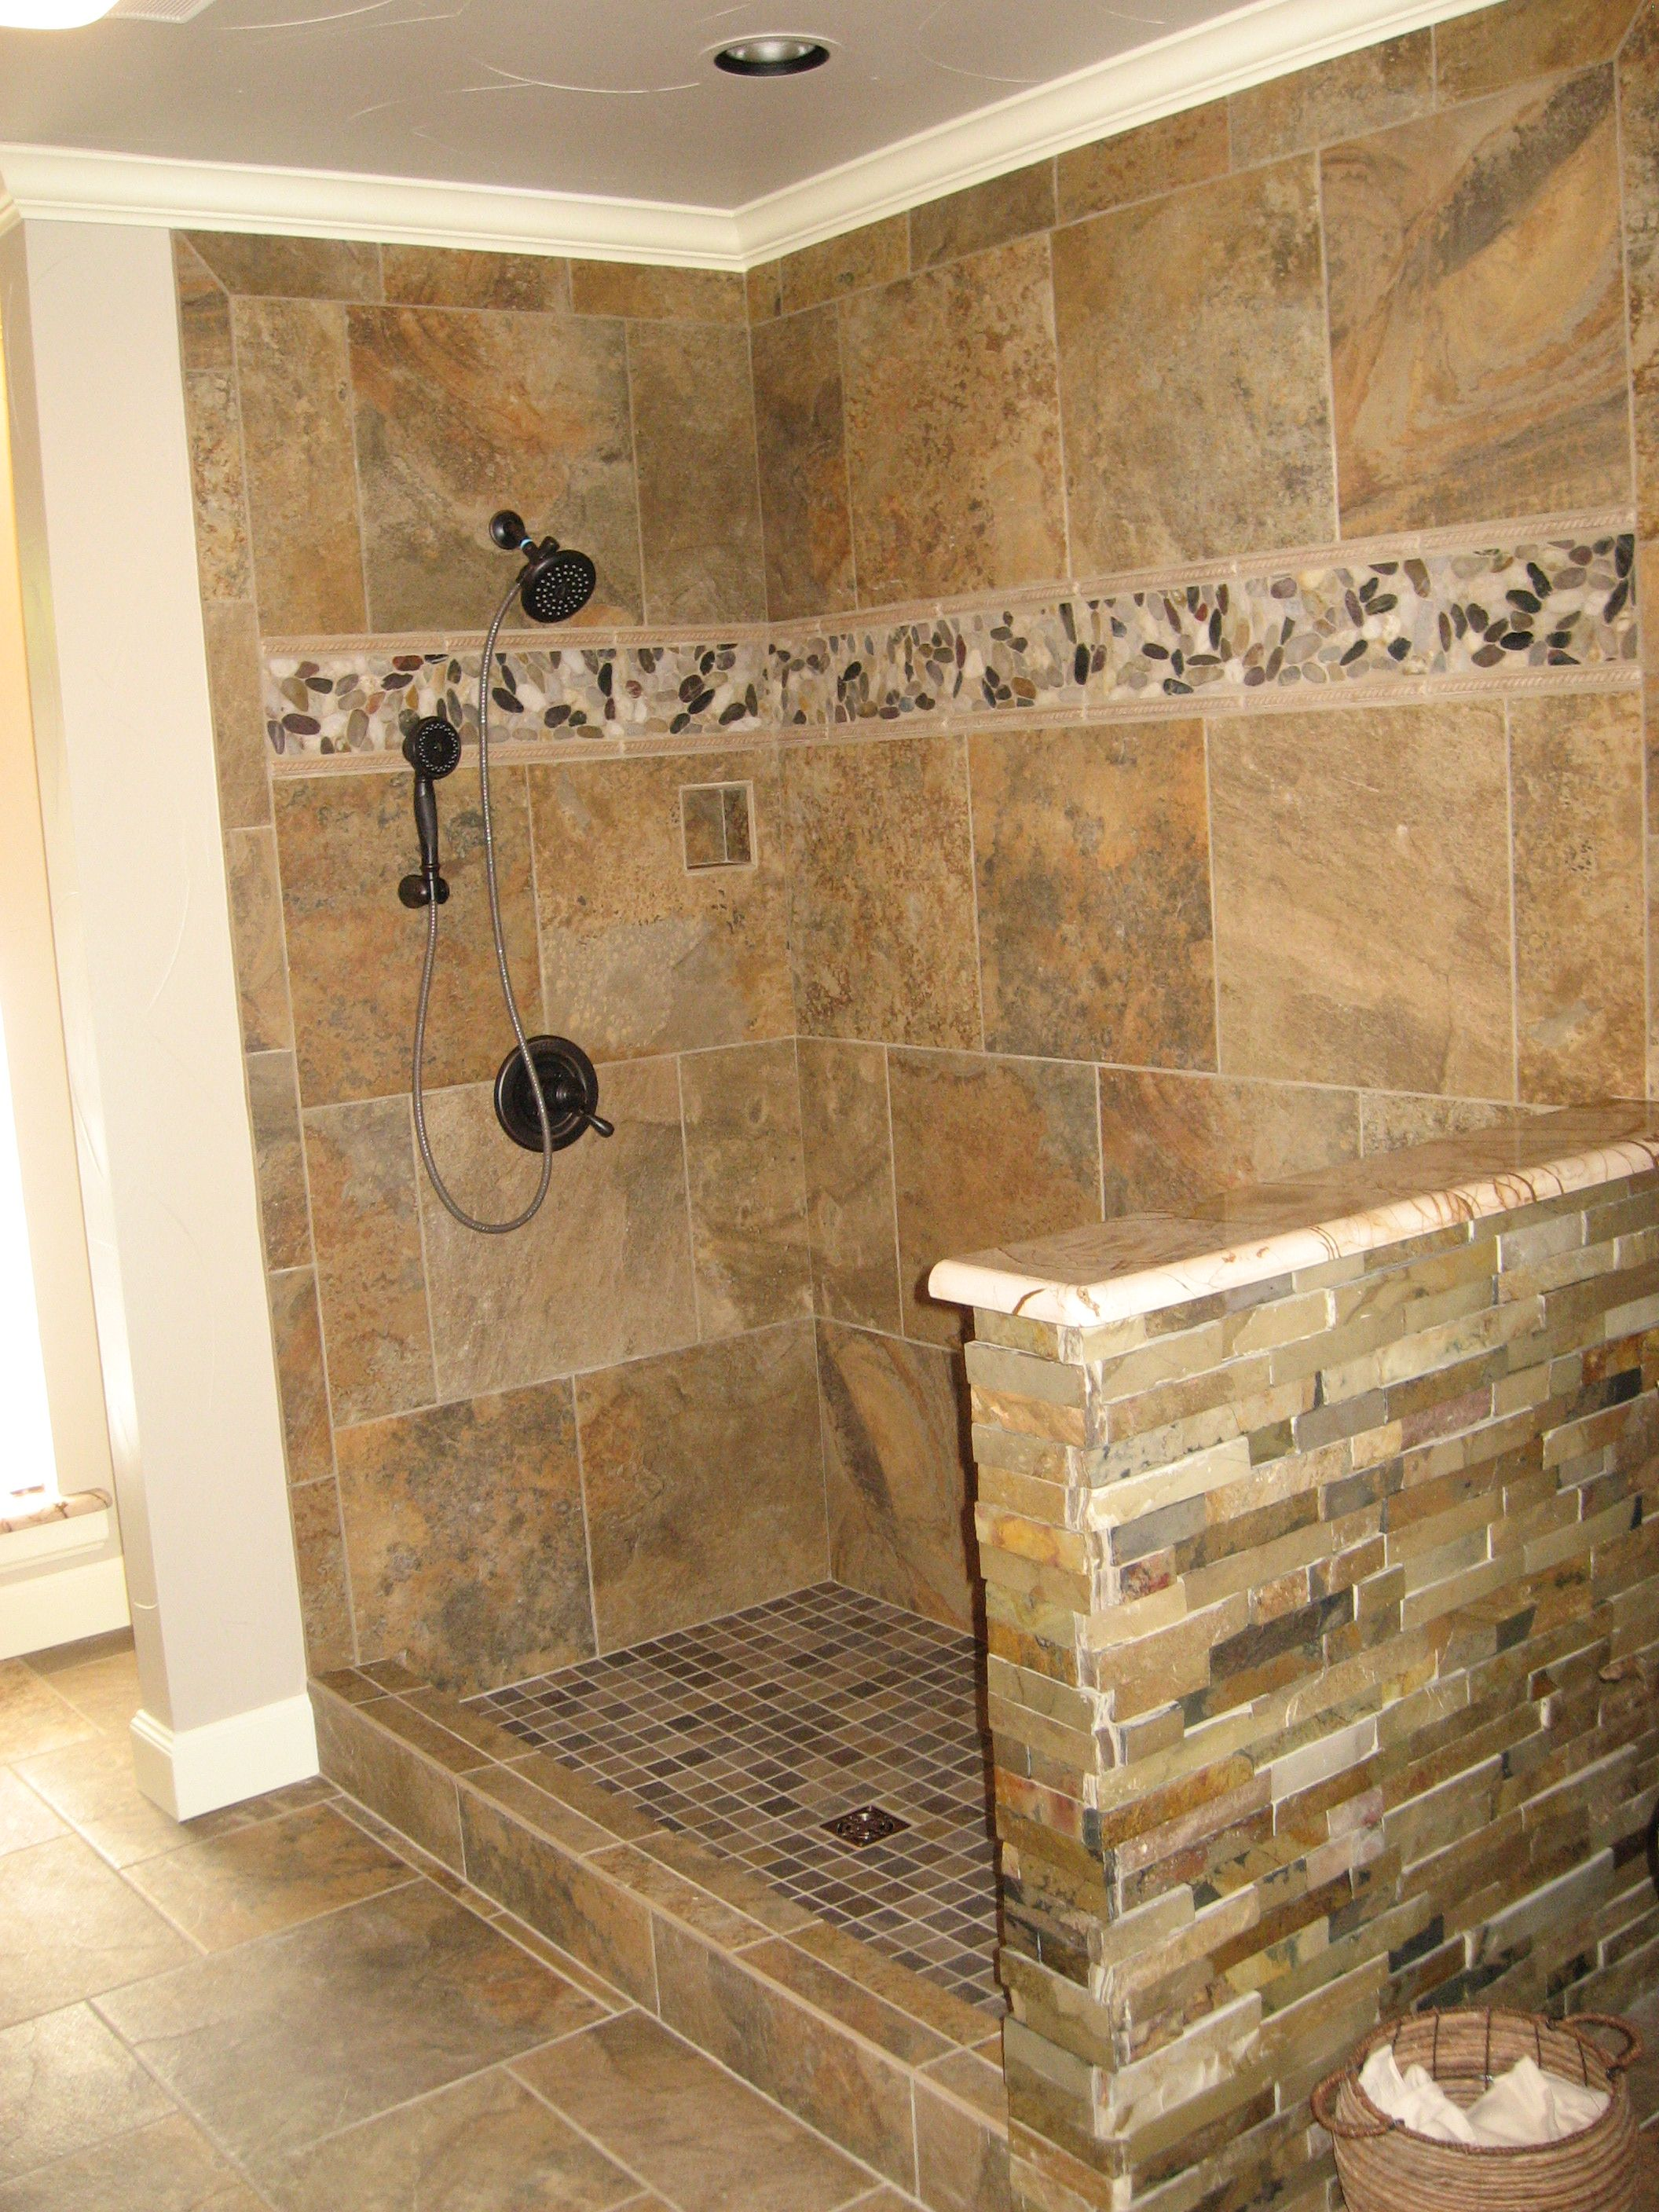 The stone accent band adds a touch of rustic - as does the stacked ...